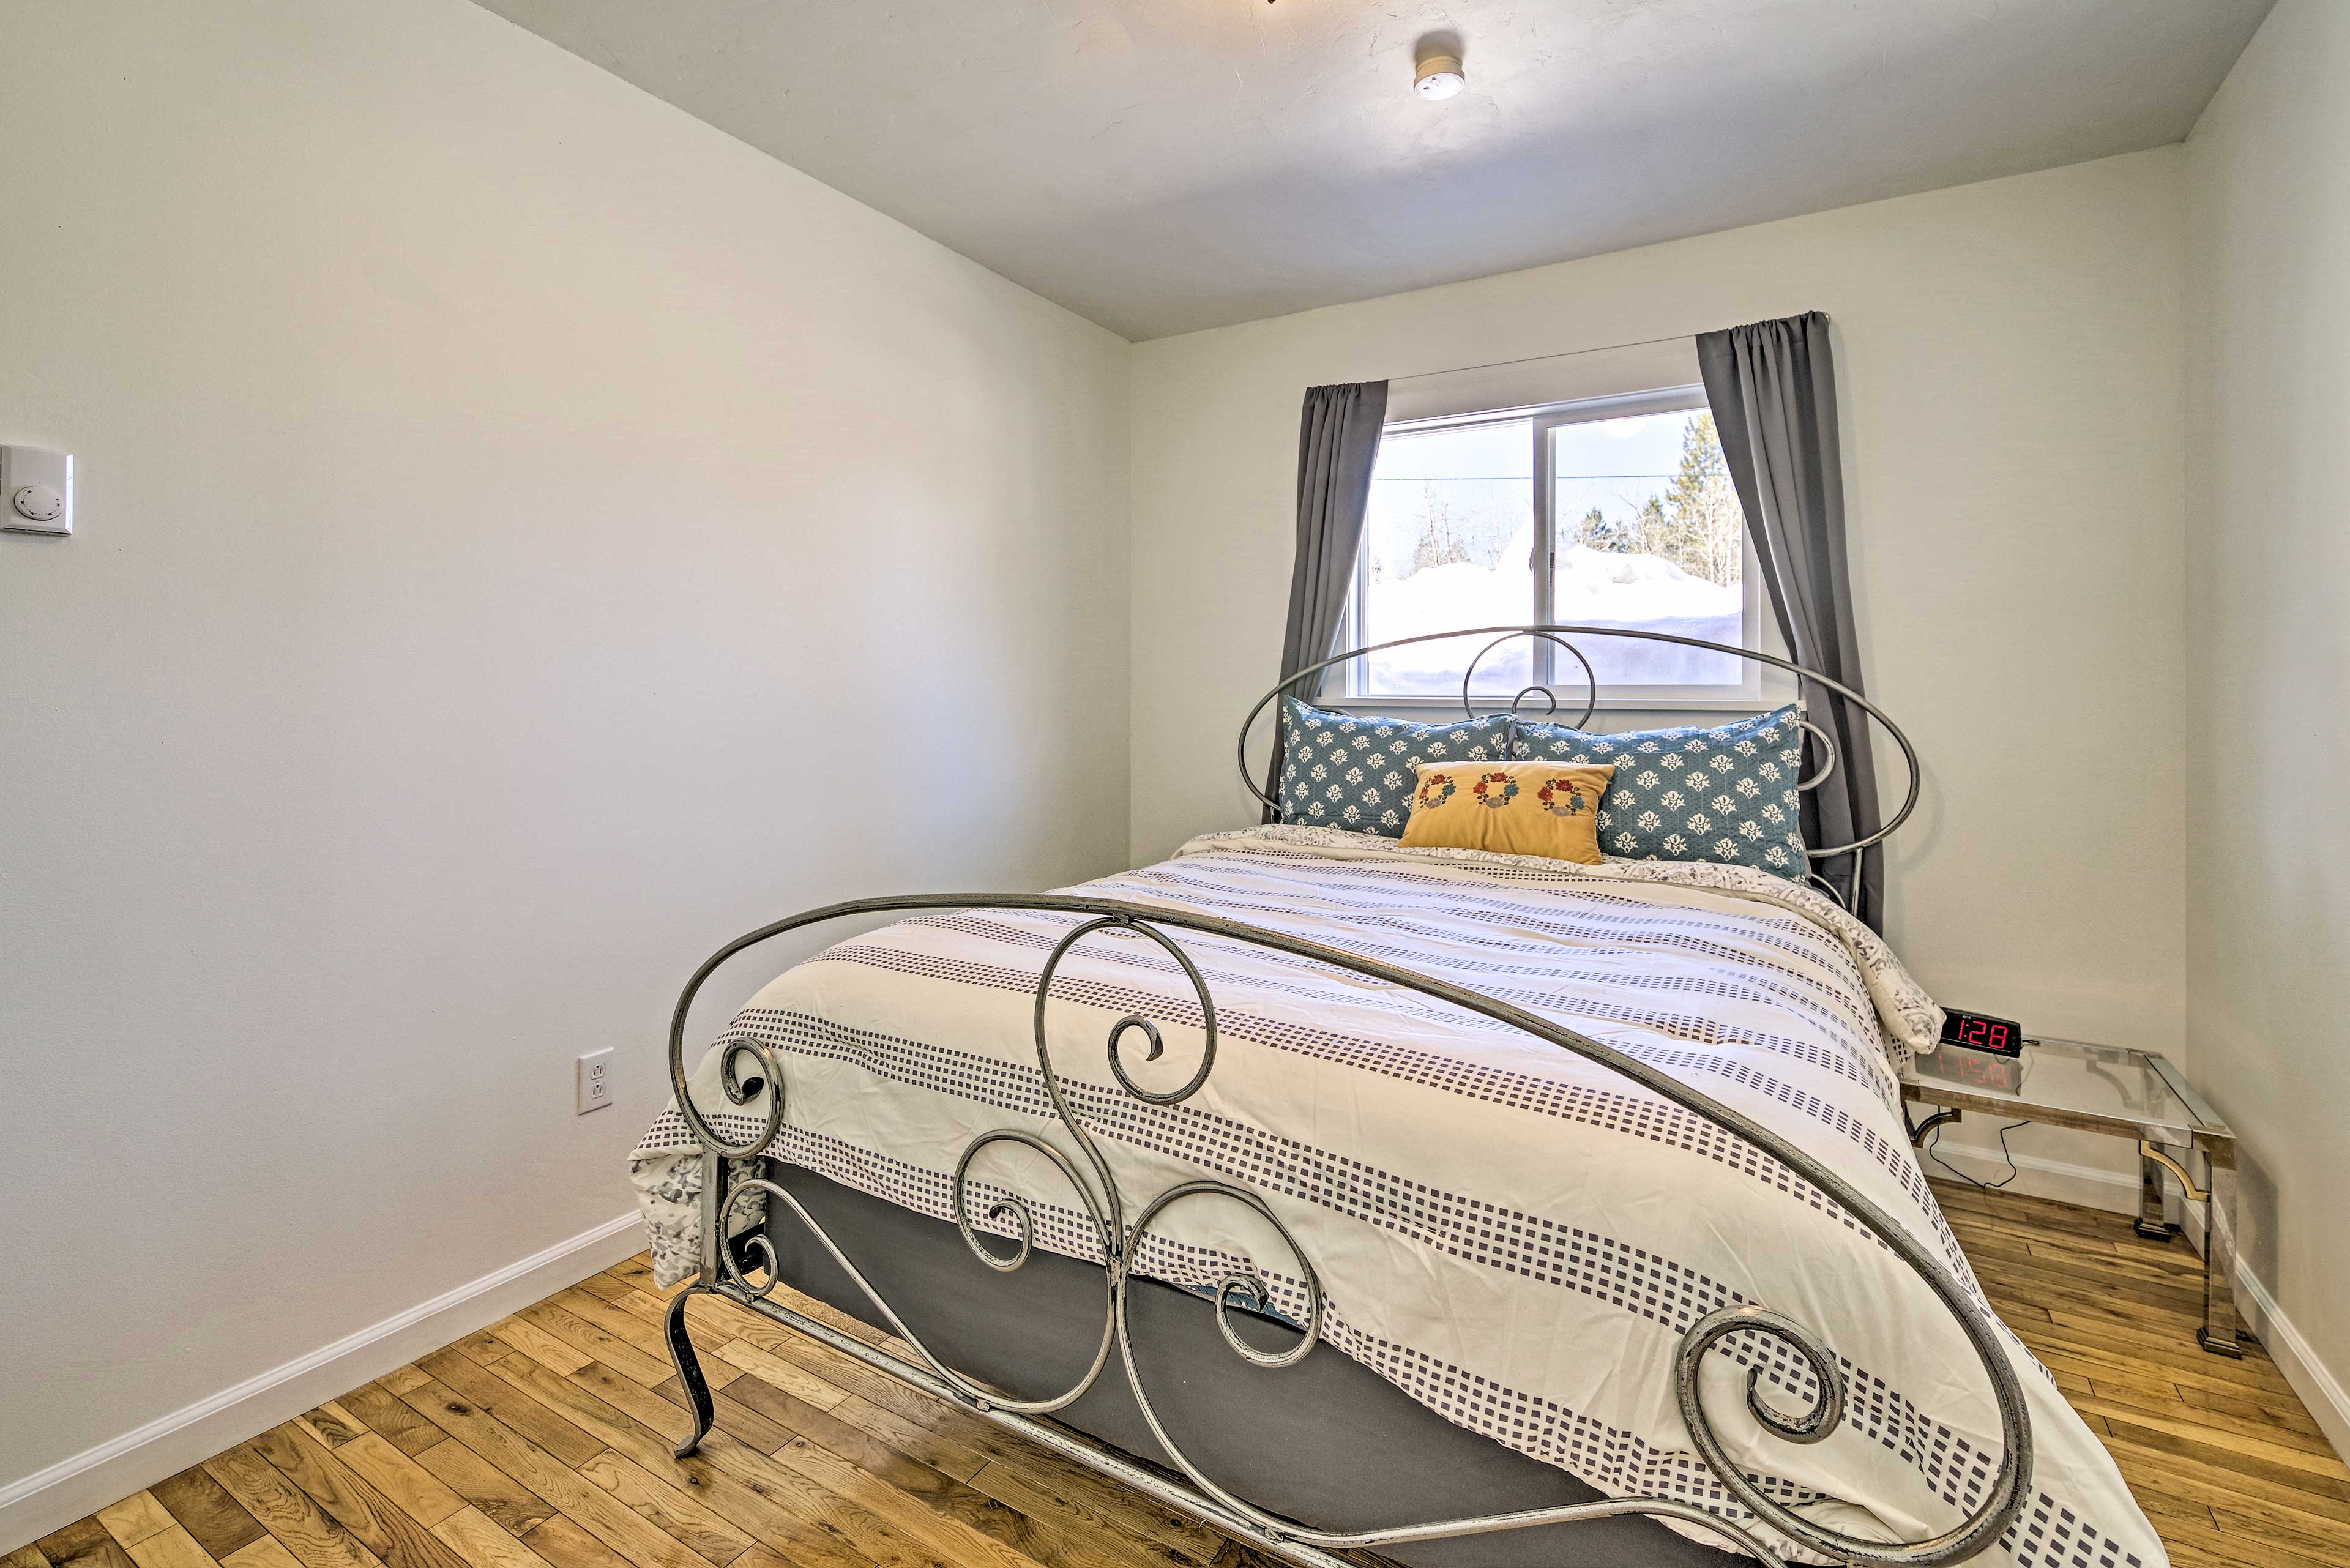 You'll find a queen bed in the third bedroom.